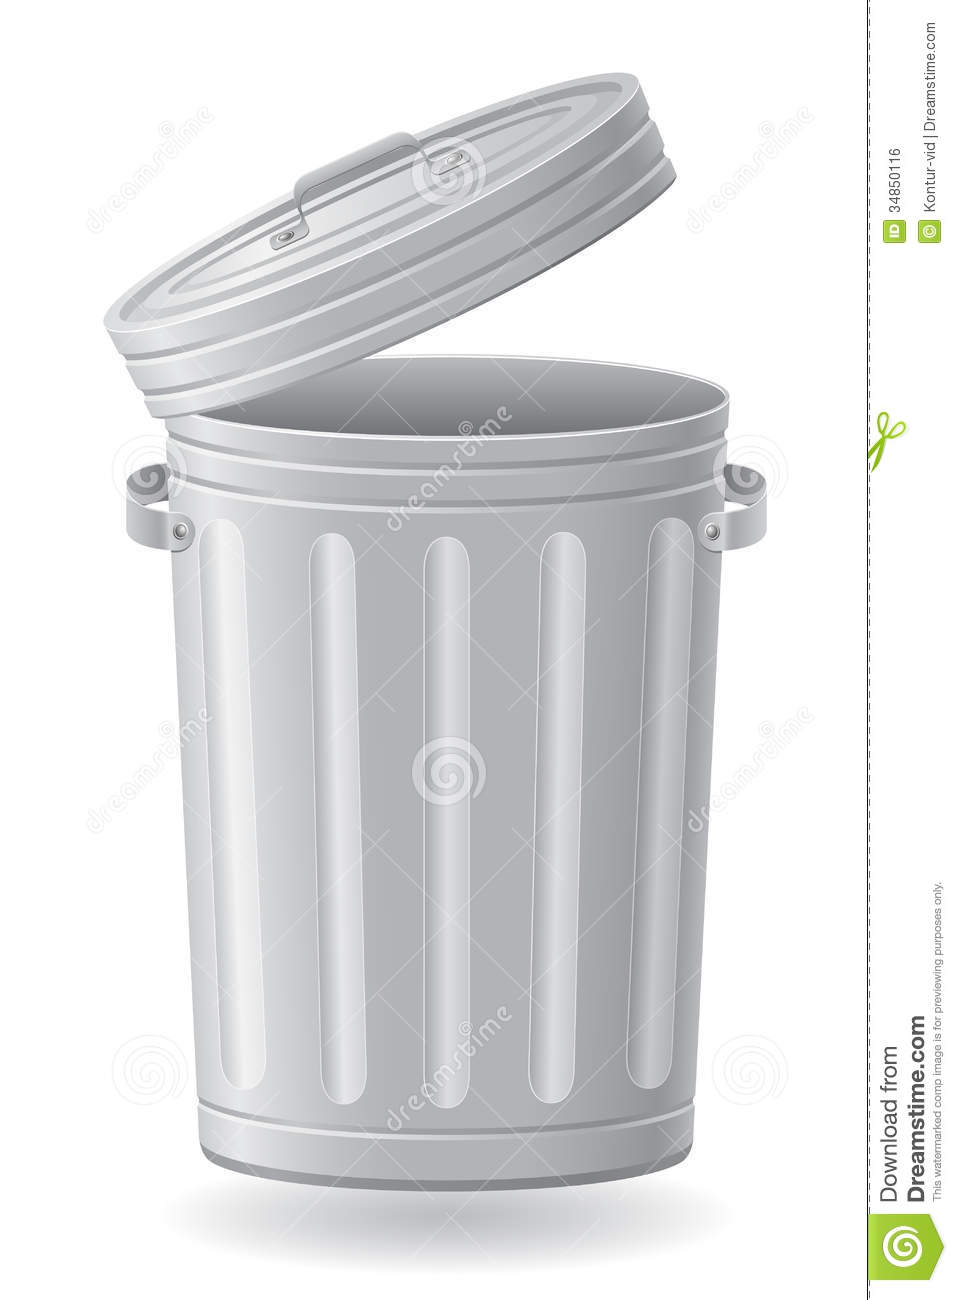 Trash Can Vector Illustration Royalty Free Stock Image